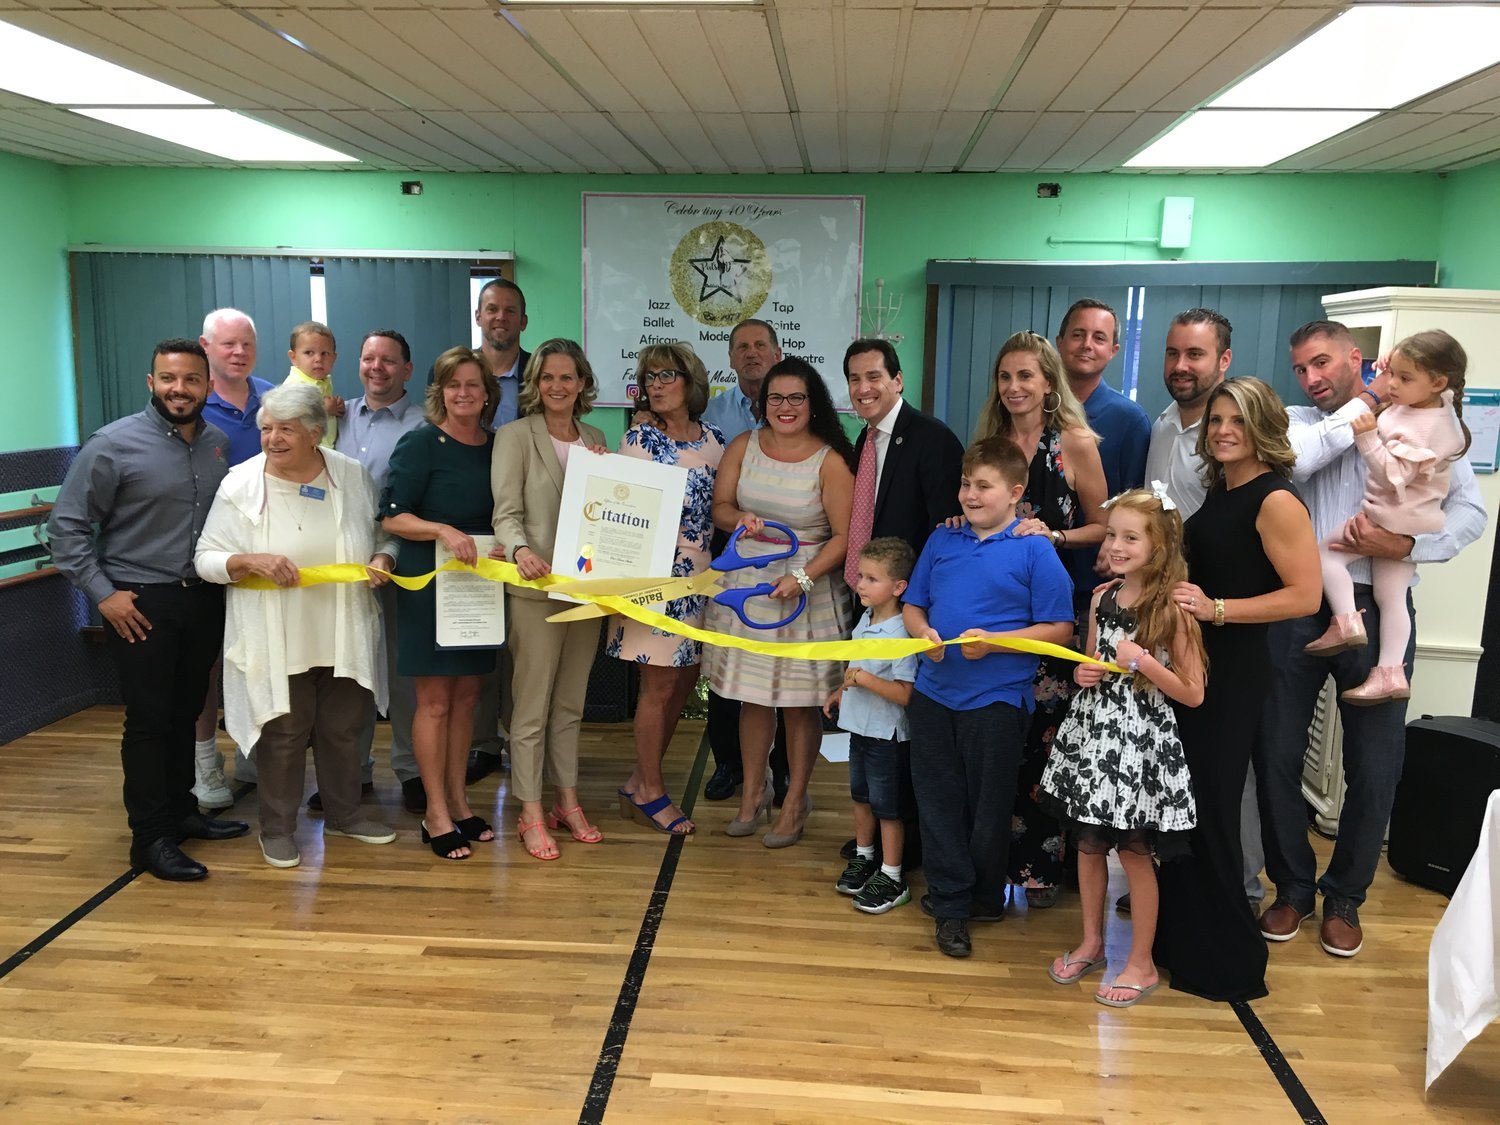 Pat Randazzo, the founder of Pat's Dance Studio, and her niece, Melanie Vaughan, the current owner, hosted a ribbon cutting party on Sept. 6 to celebrate 40 years in business.